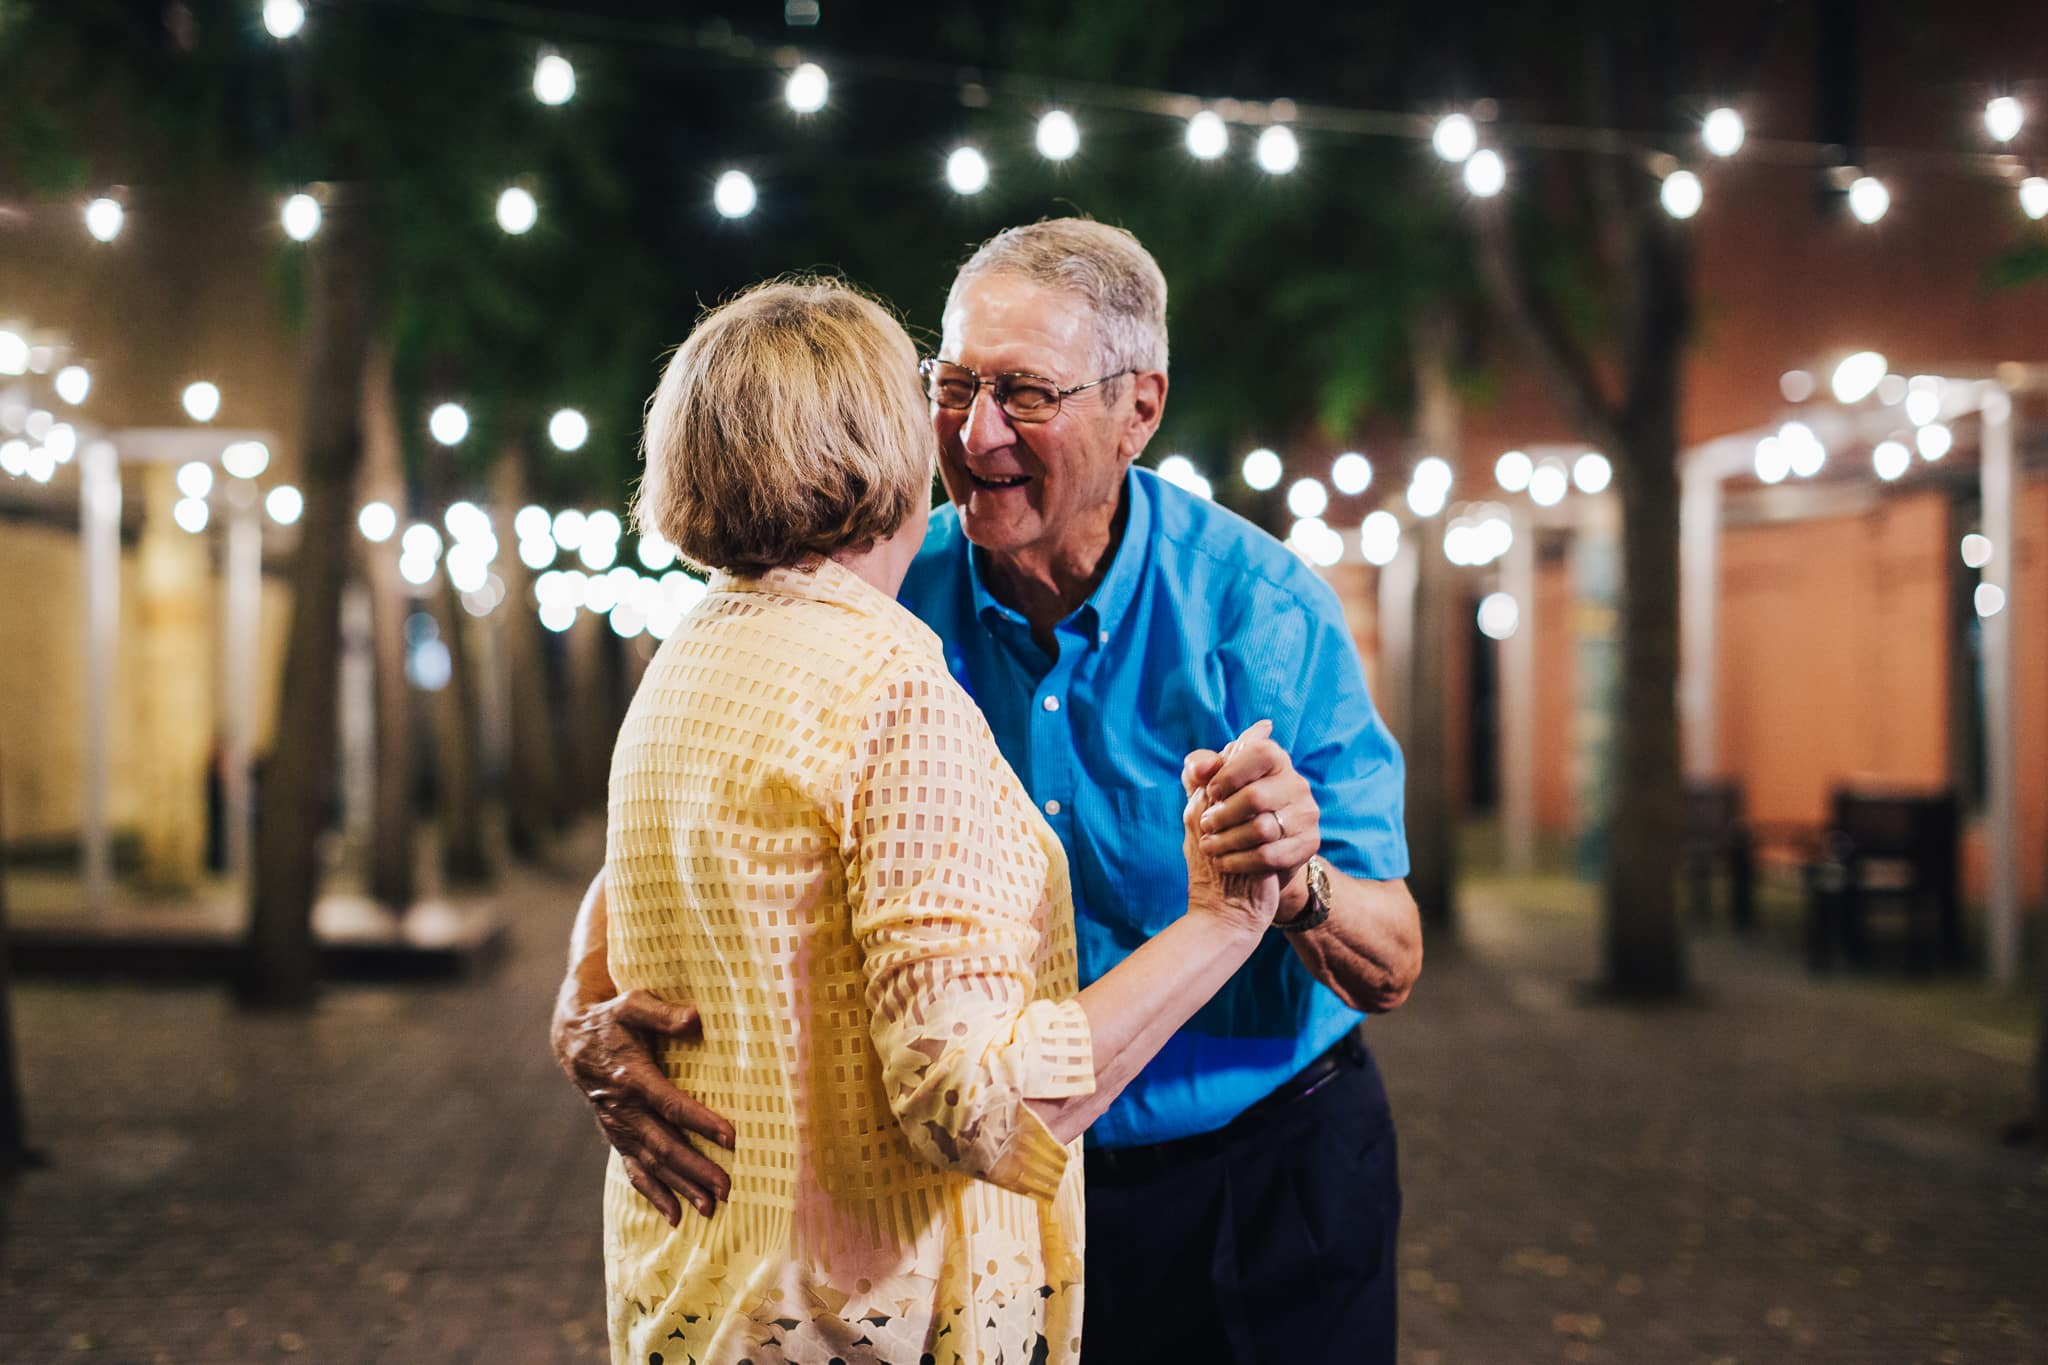 Friendship residents, couple dancing, string lights,